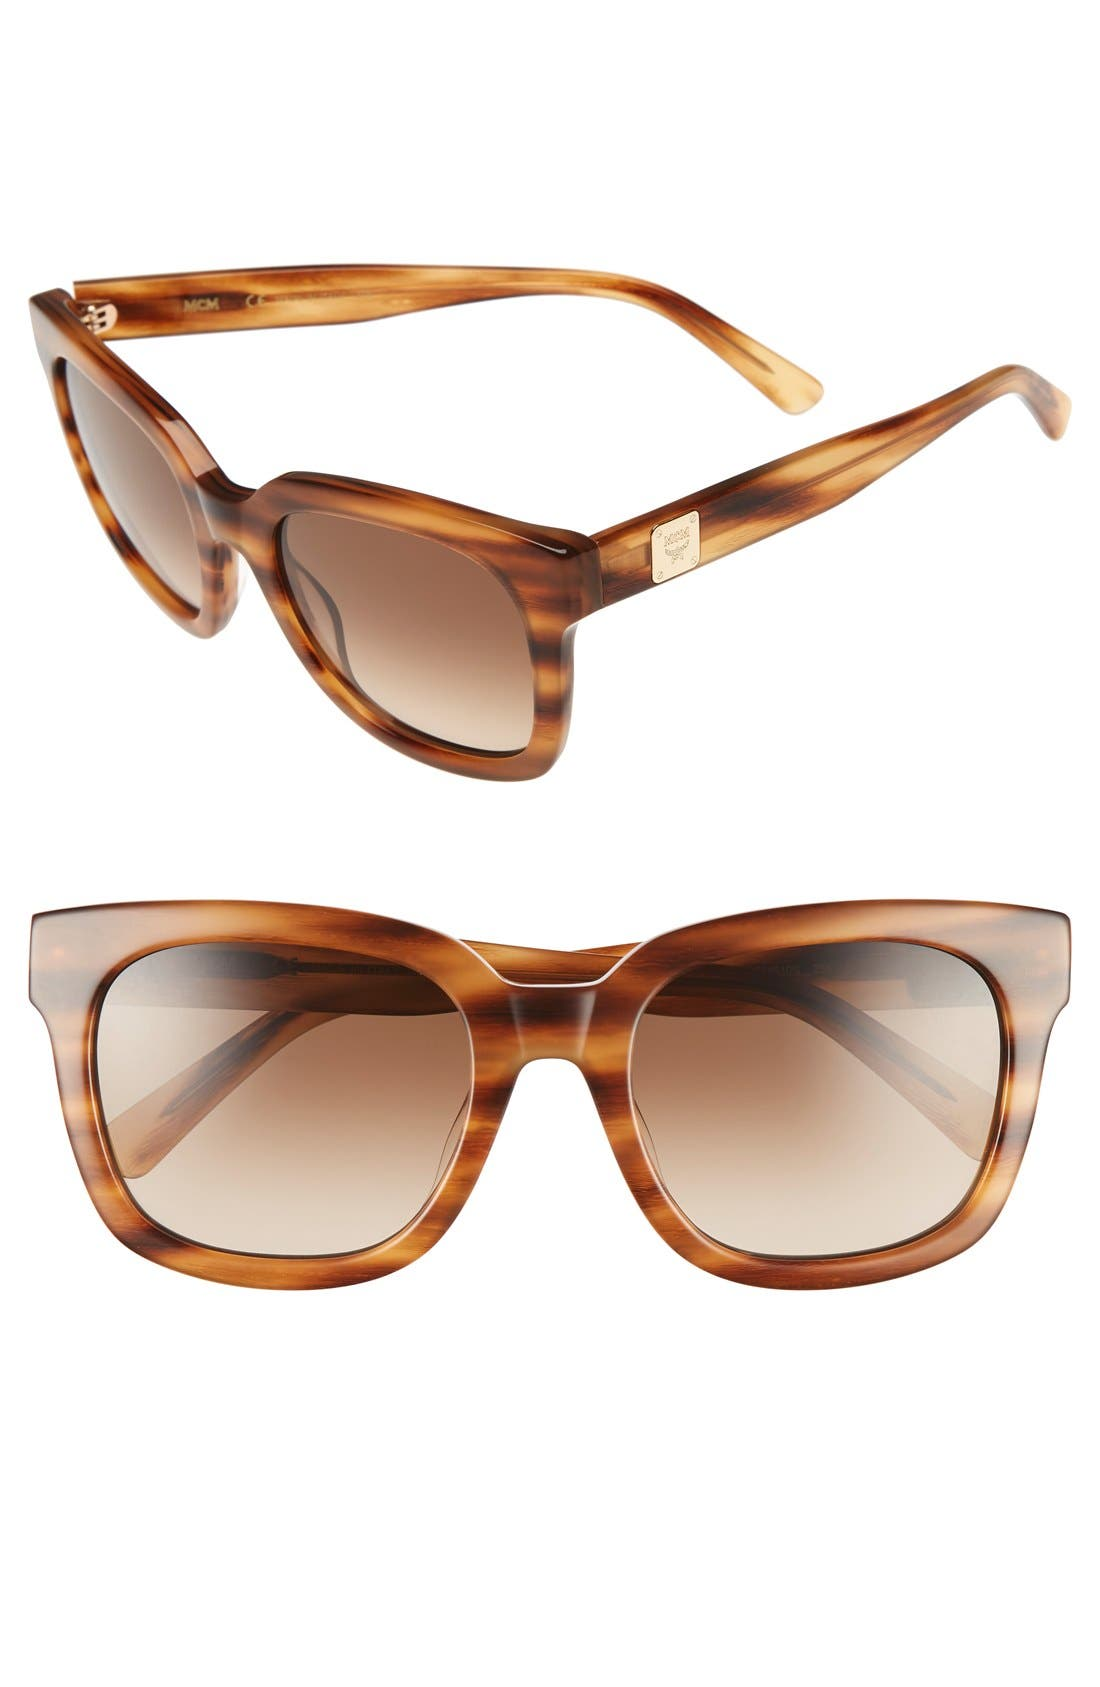 MCM 54mm Retro Sunglasses